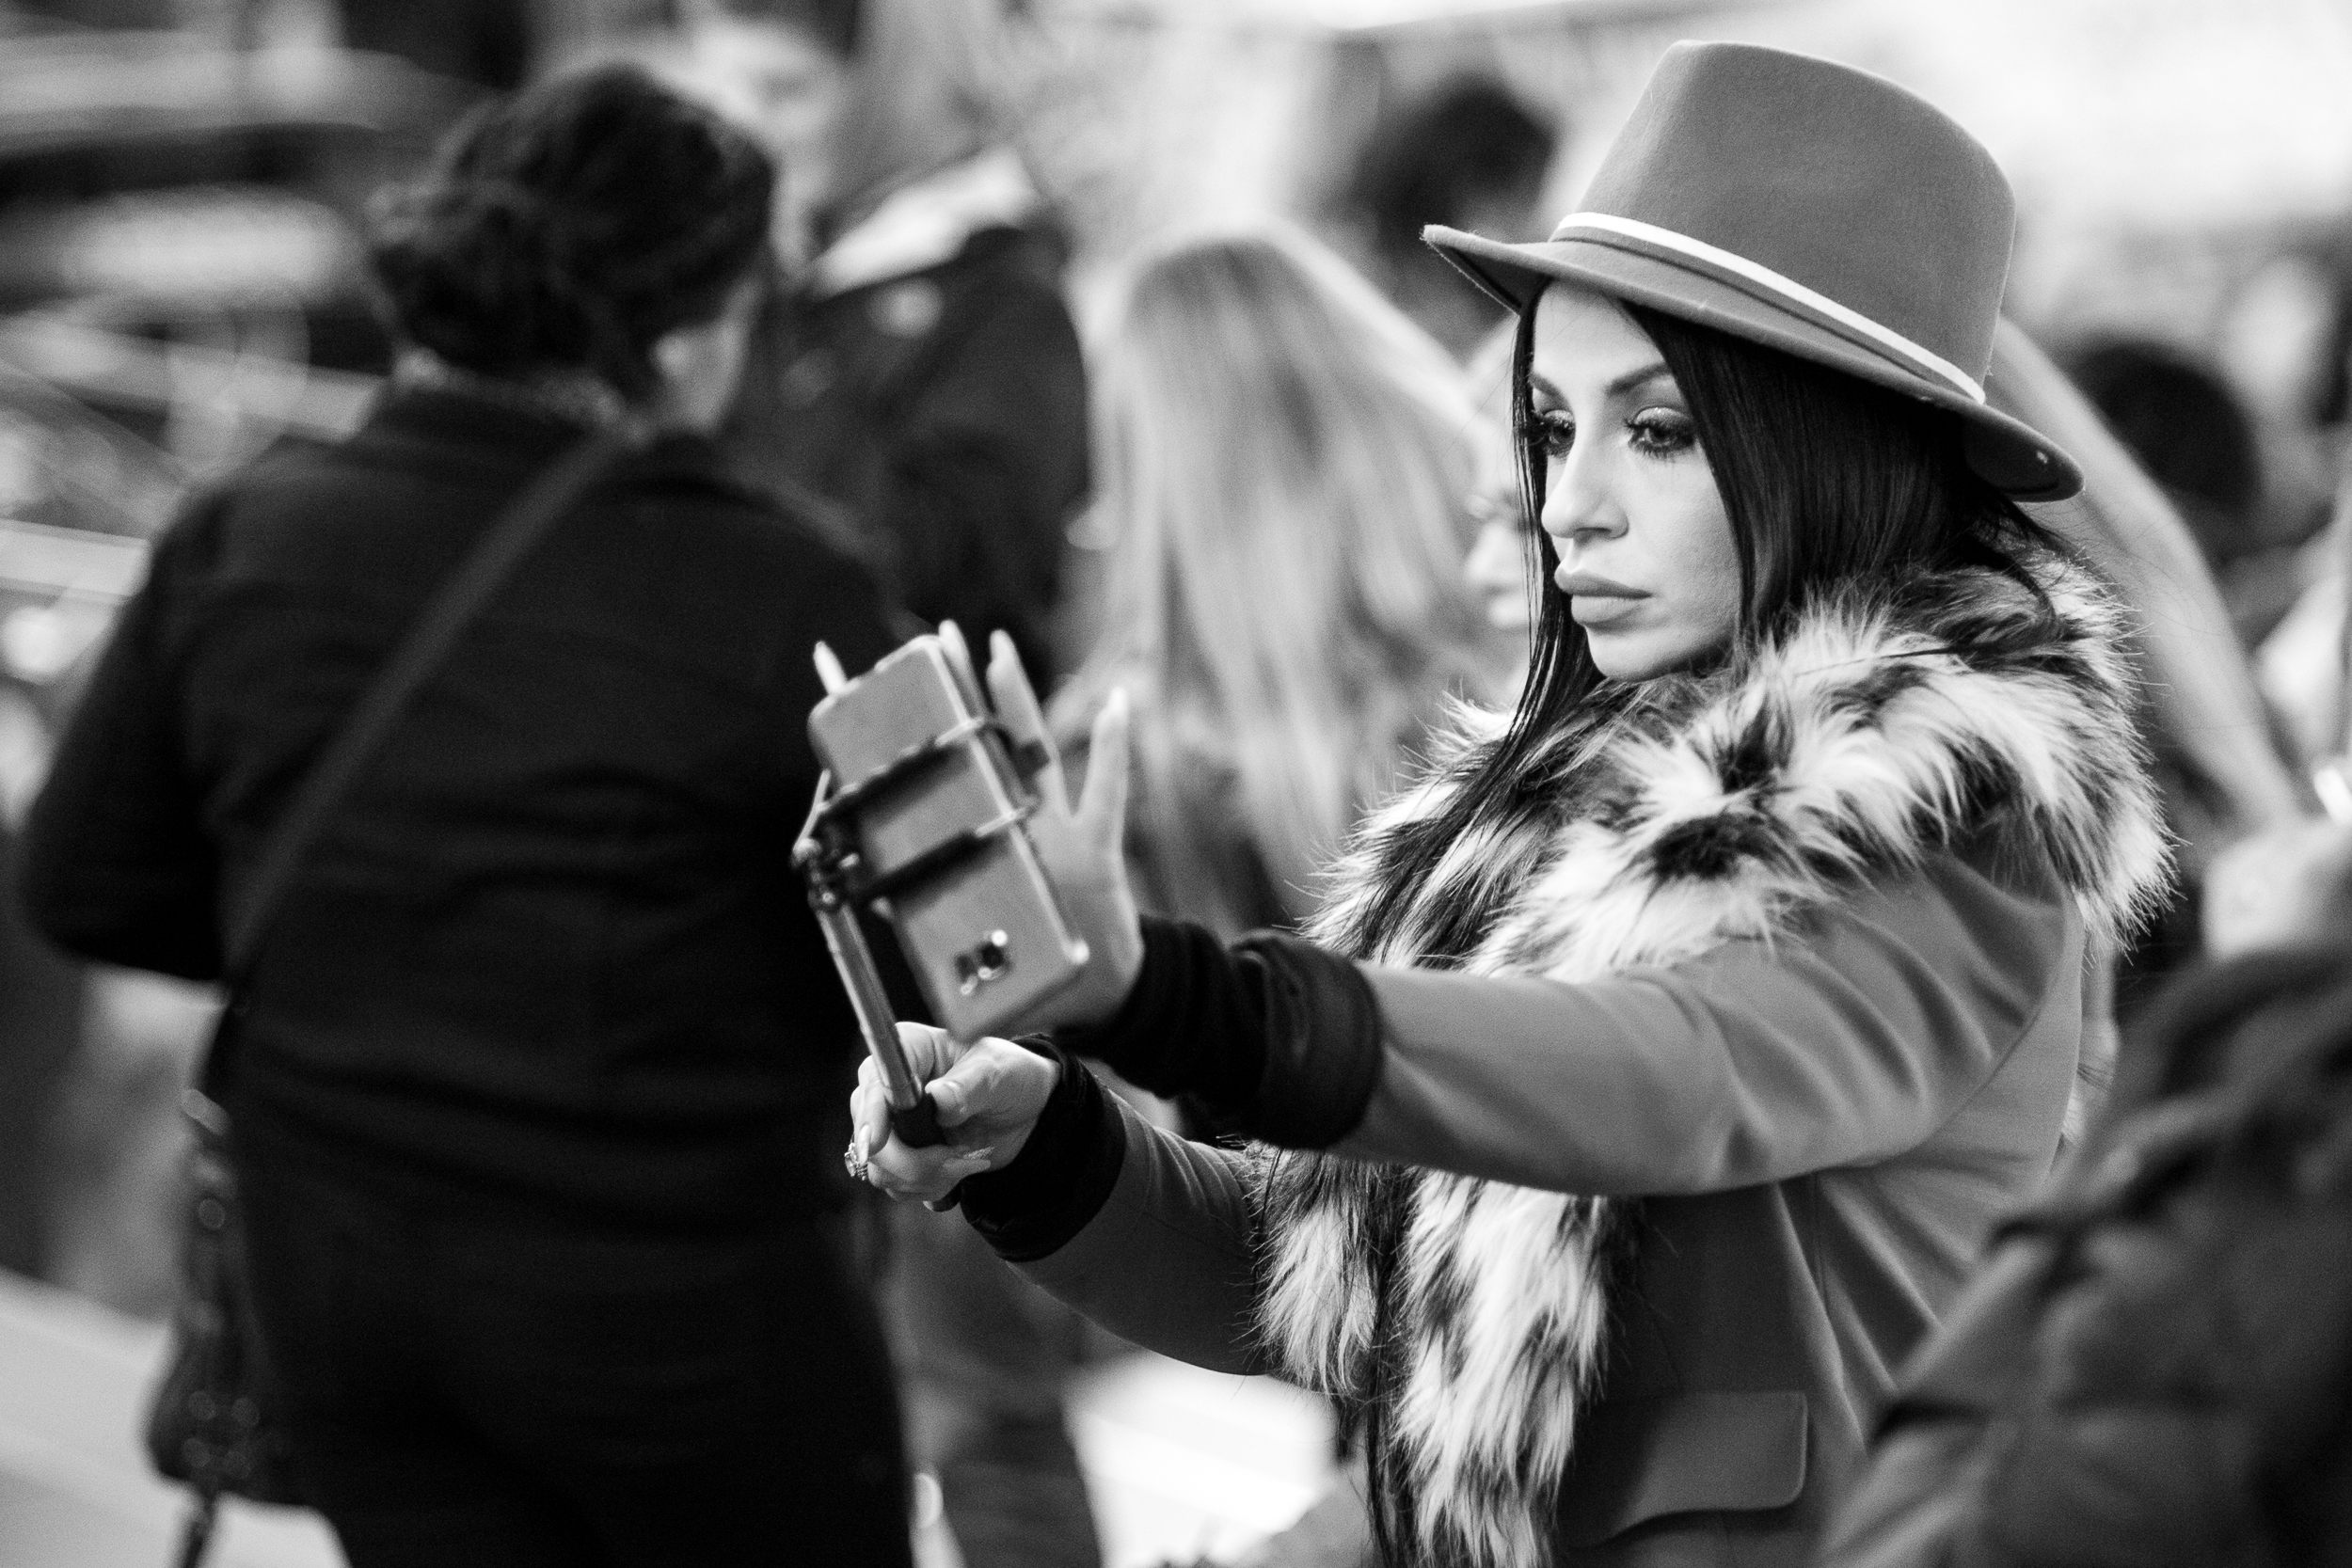 Selfie. A woman dressed up in her finest fashion prepares her selfie in Times Square. Leica M10 with 90mm Summicron f/2.